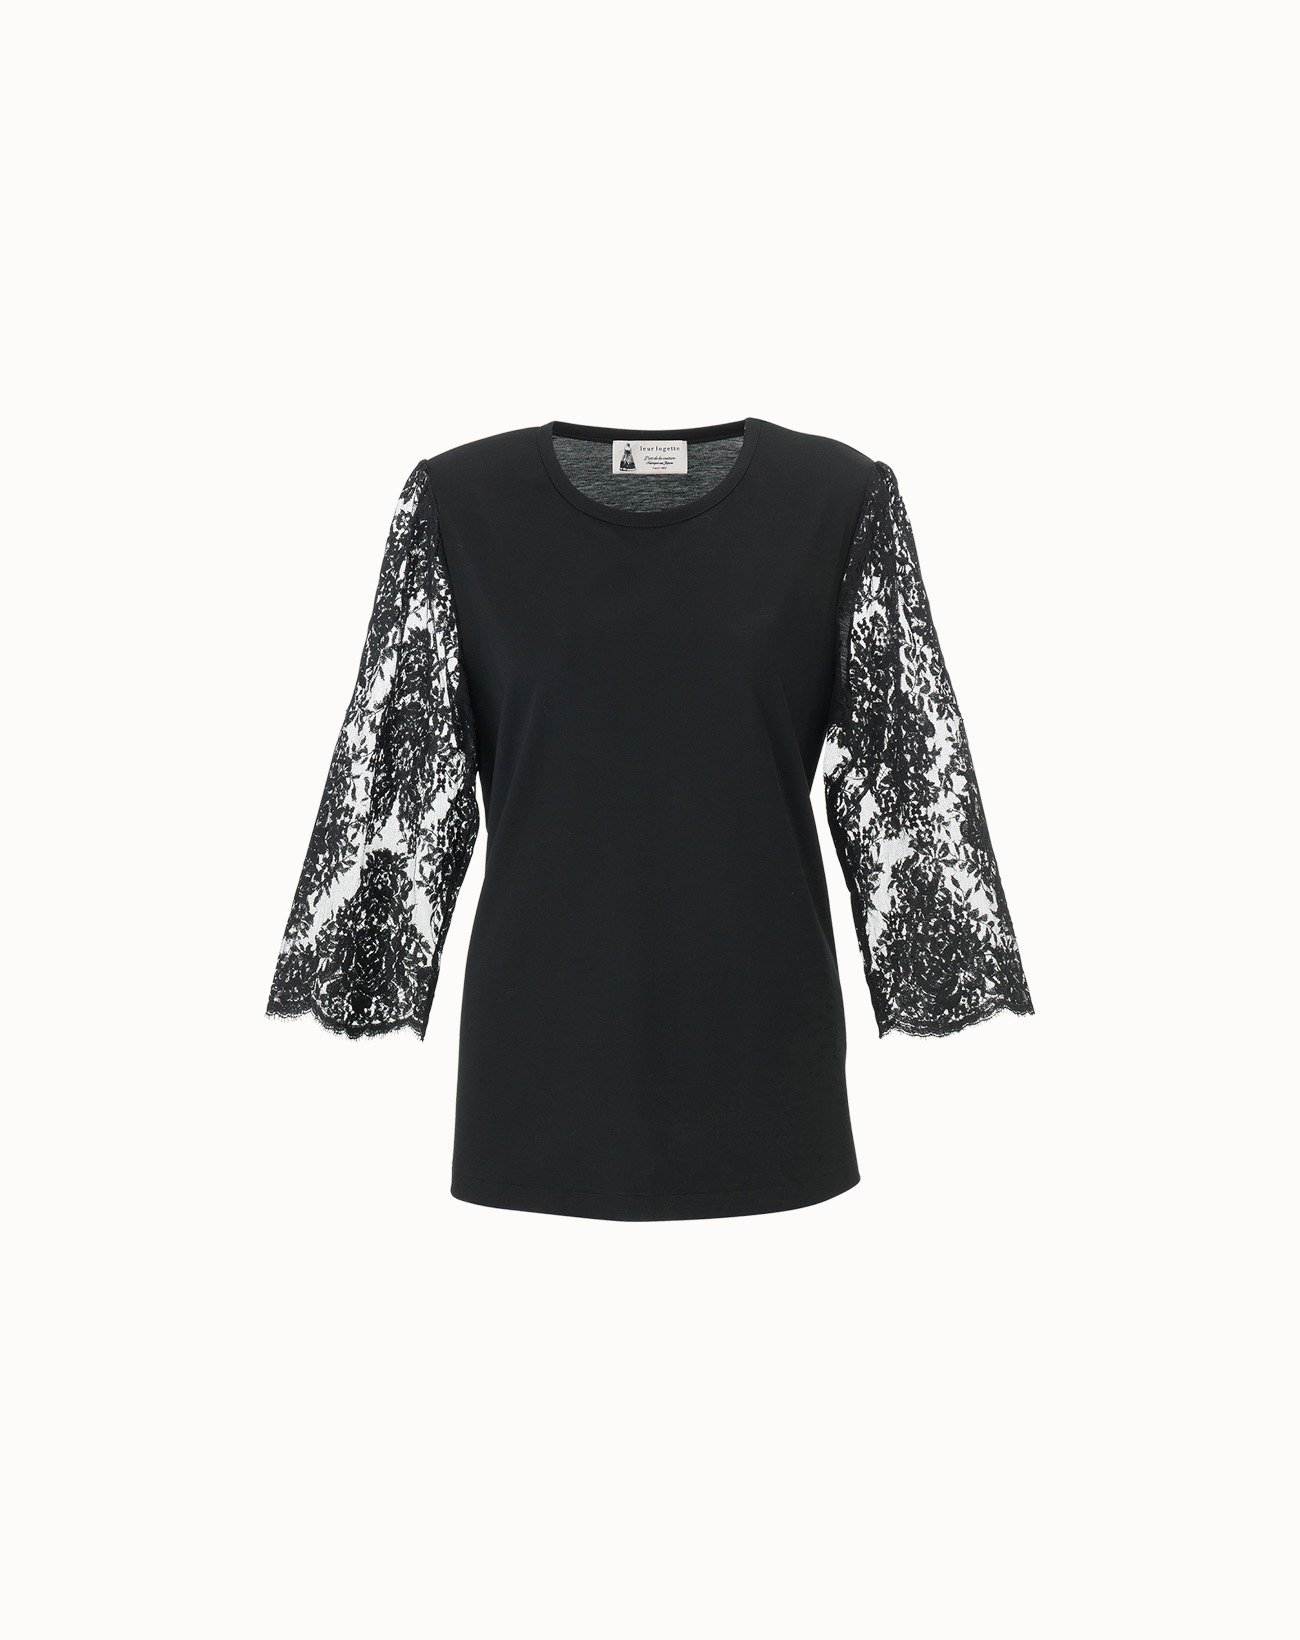 leur logette - Compact Cotton Sleeve Lace Top - Black